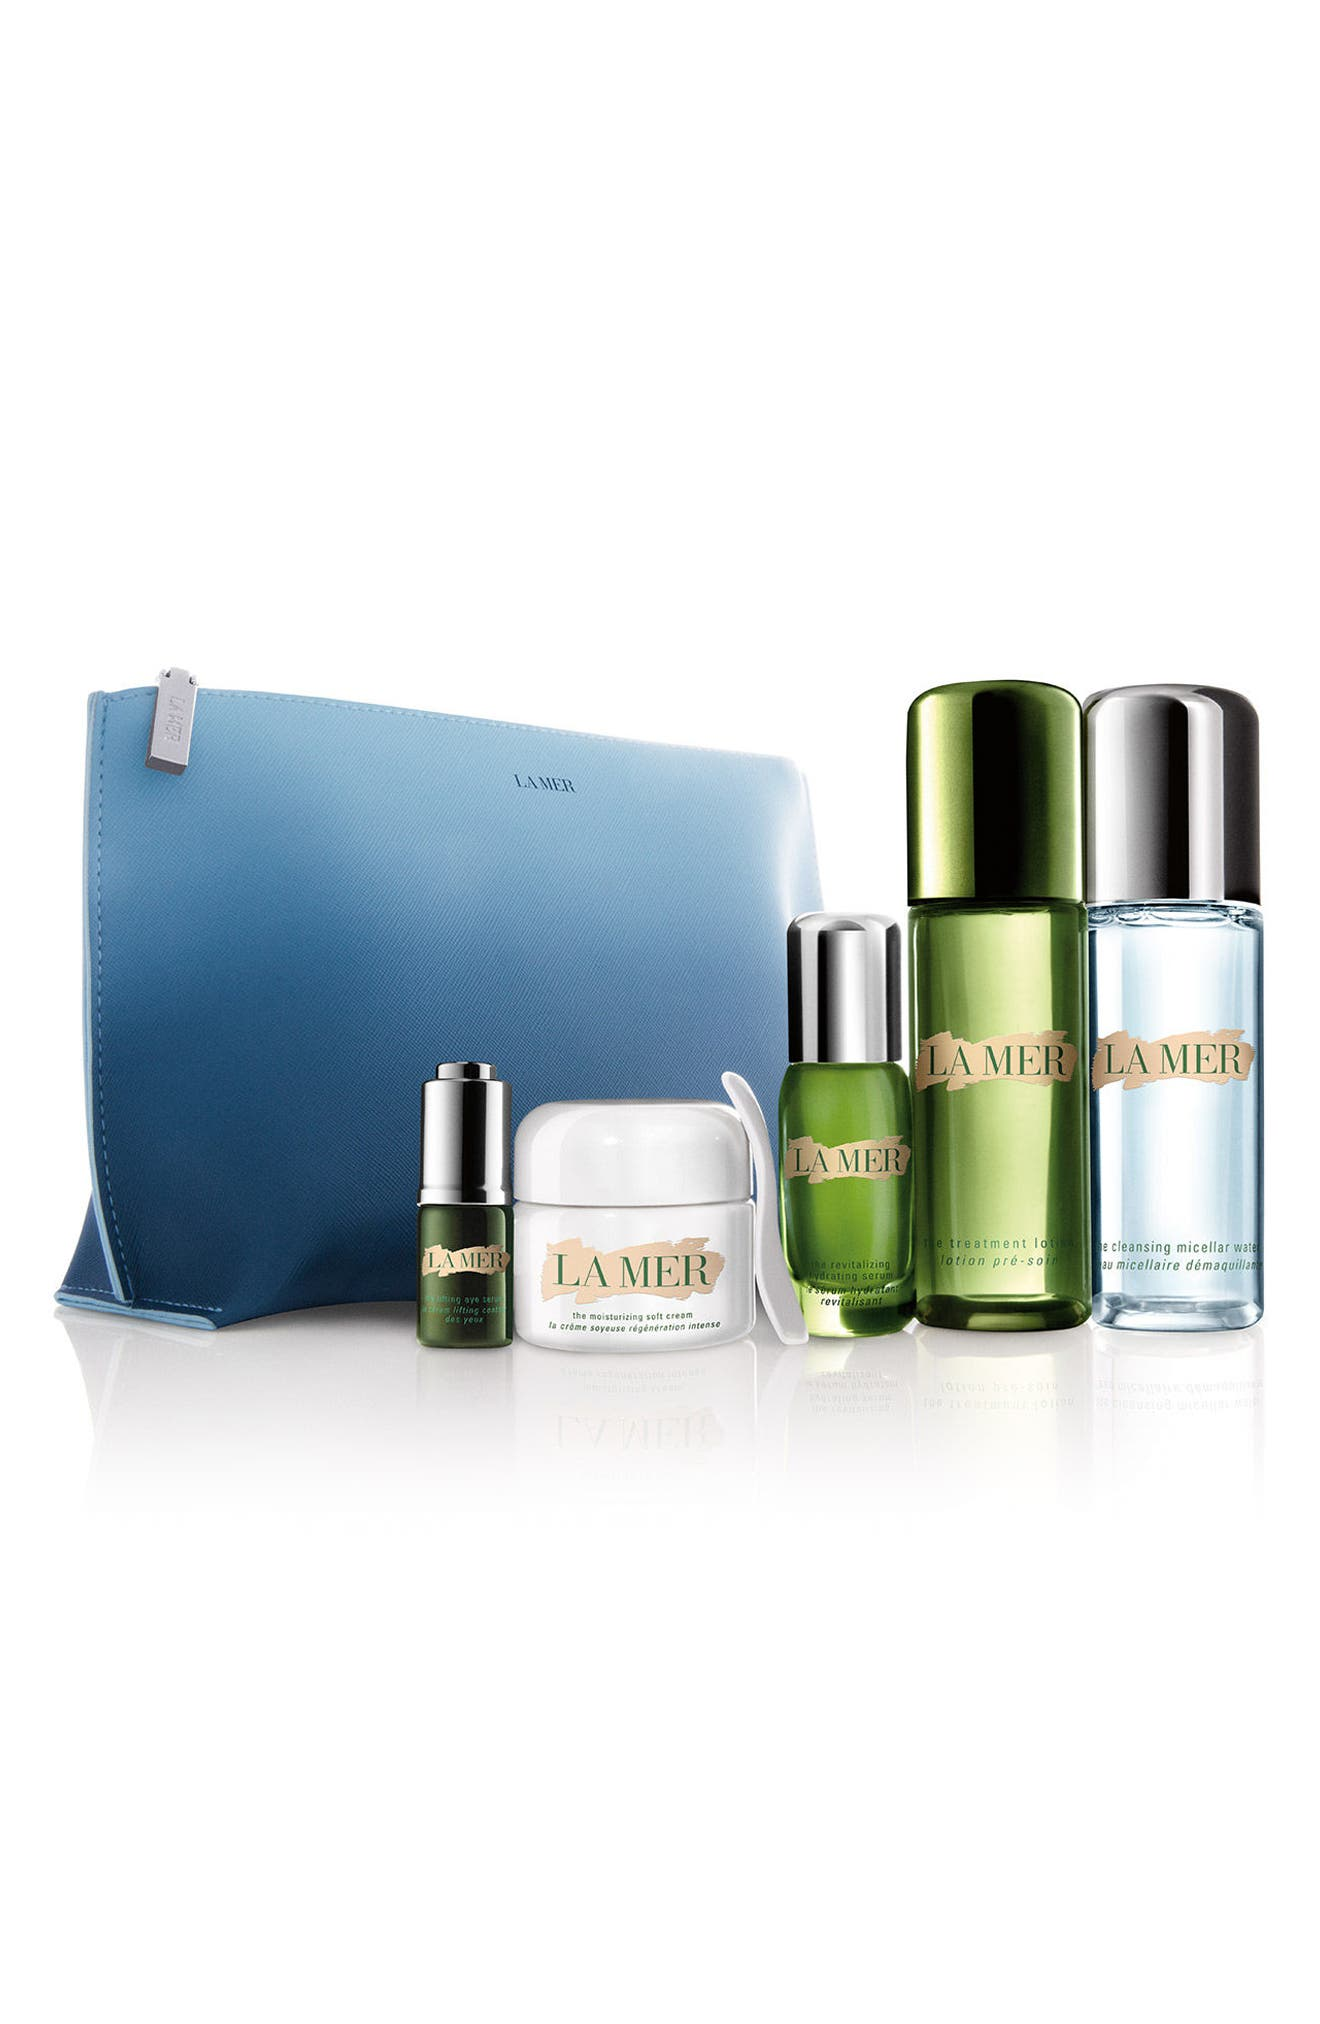 La Mer The Revitalizing Starter Set ($500 Value)